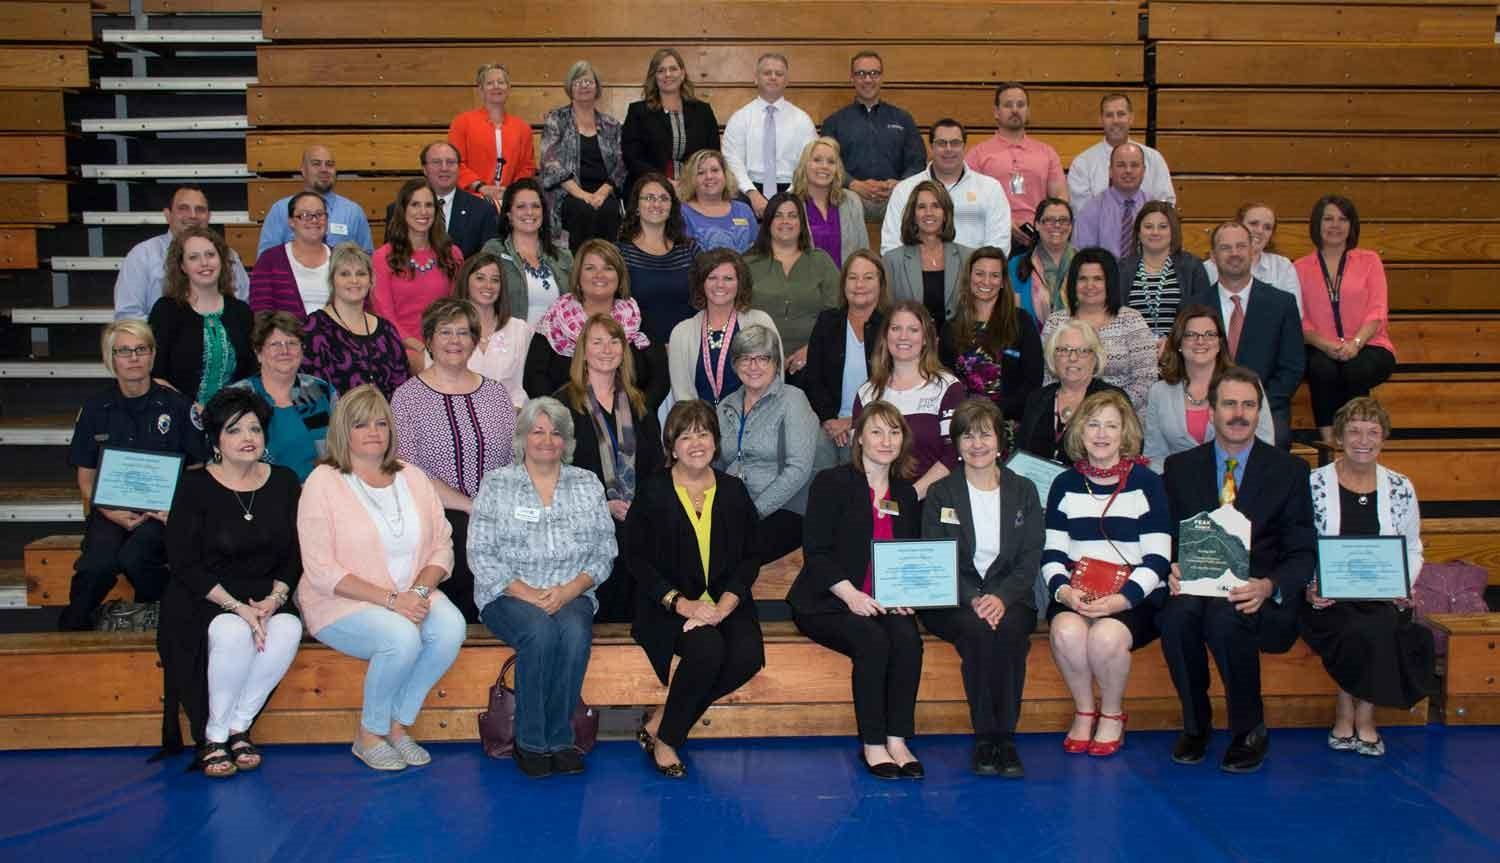 Members of the community who partner with the school district to provide early learning opportunities attended the PEAK Award ceremony and were recognized during the event for their contribution.